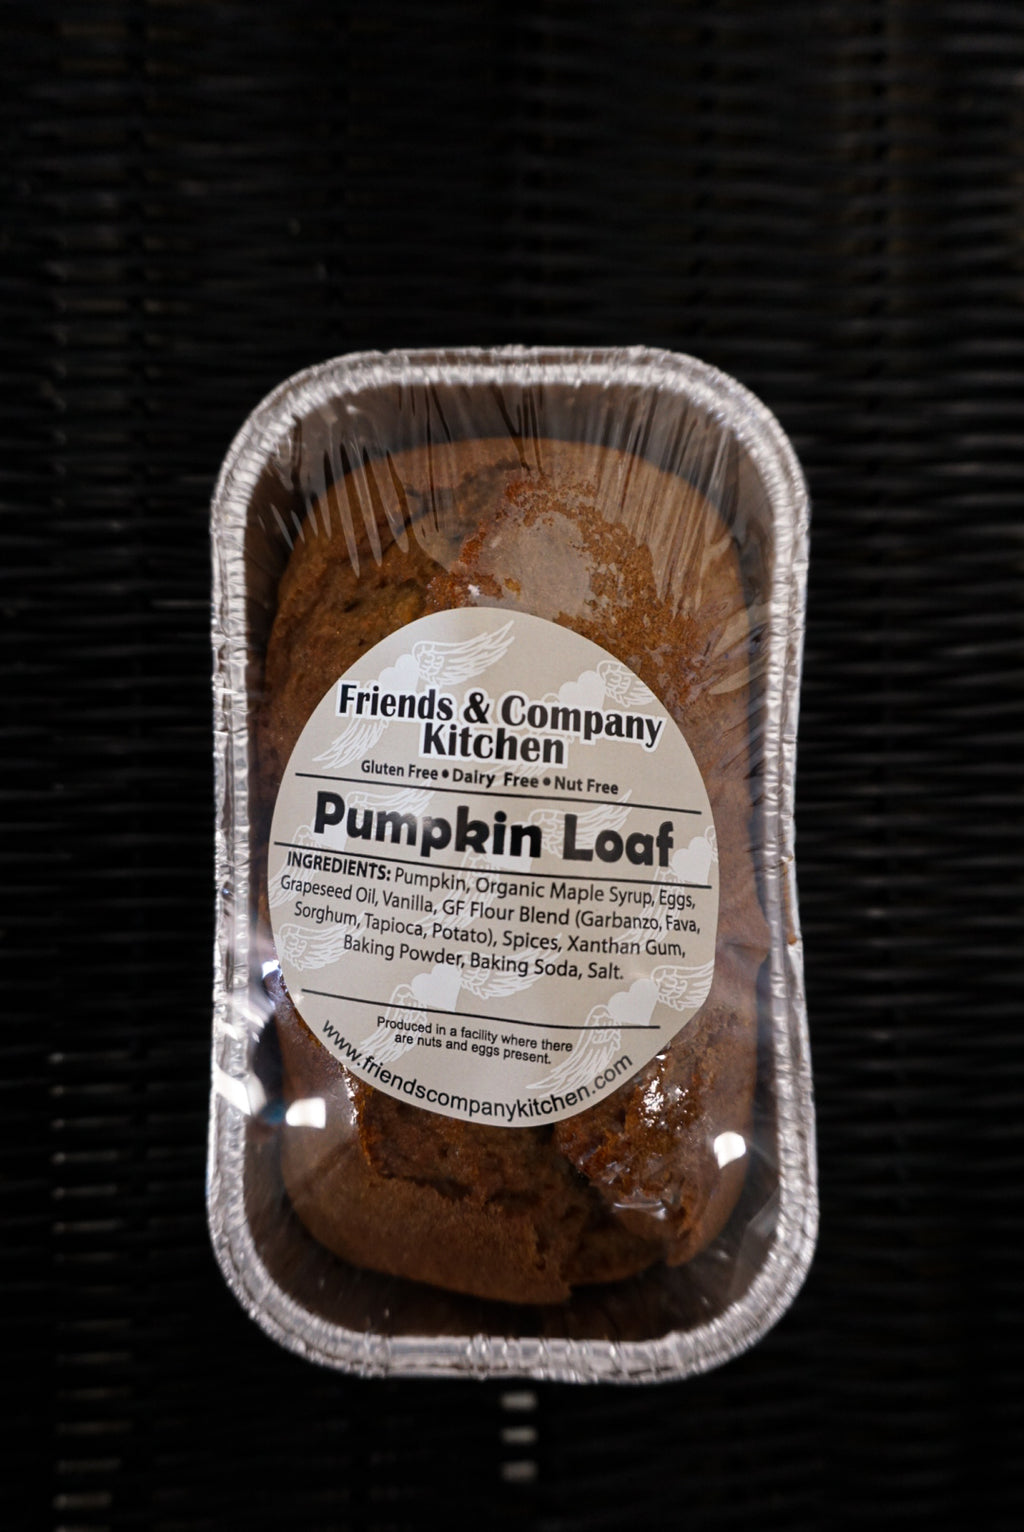 Friends & Company Kitchen Pumpkin Loaf - Delivery